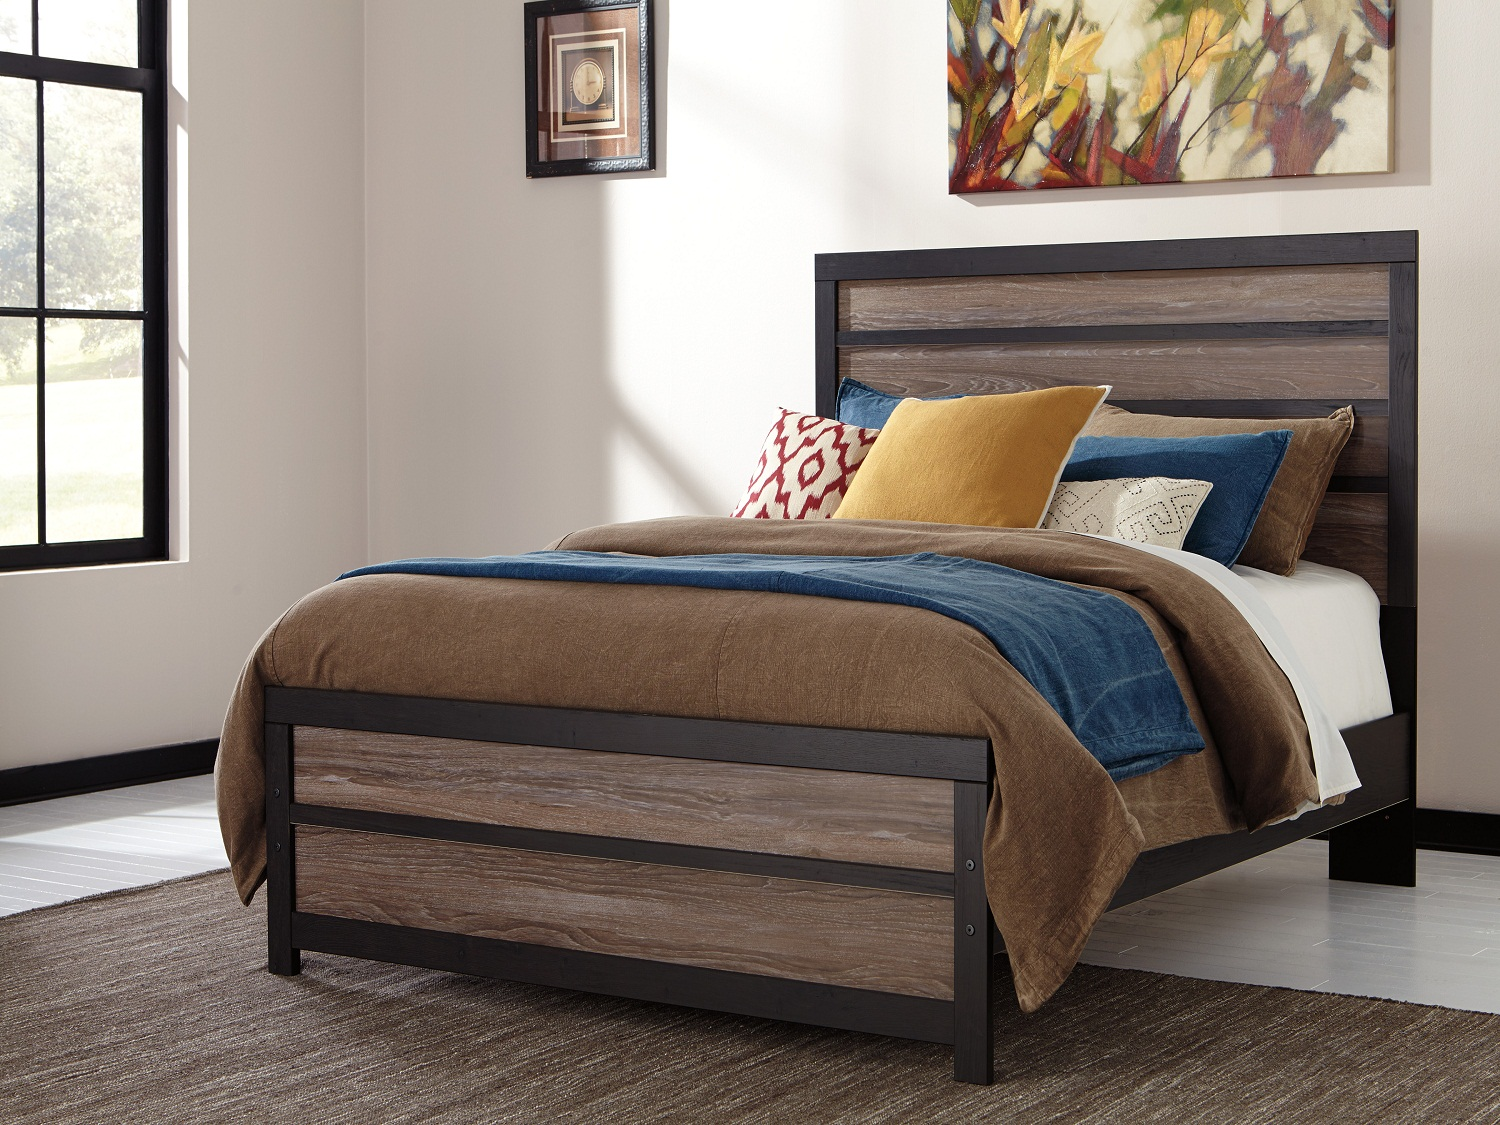 Harlinton bed, B325, Beds, Harlinton bed from Ashley by Midha Furniture serving Brampton, Mississauga, Etobicoke, Toronto, Scraborough, Caledon, Cambridge, Oakville, Markham, Ajax, Pickering, Oshawa, Richmondhill, Kitchener, Hamilton, Cambridge, Waterloo and GTA area